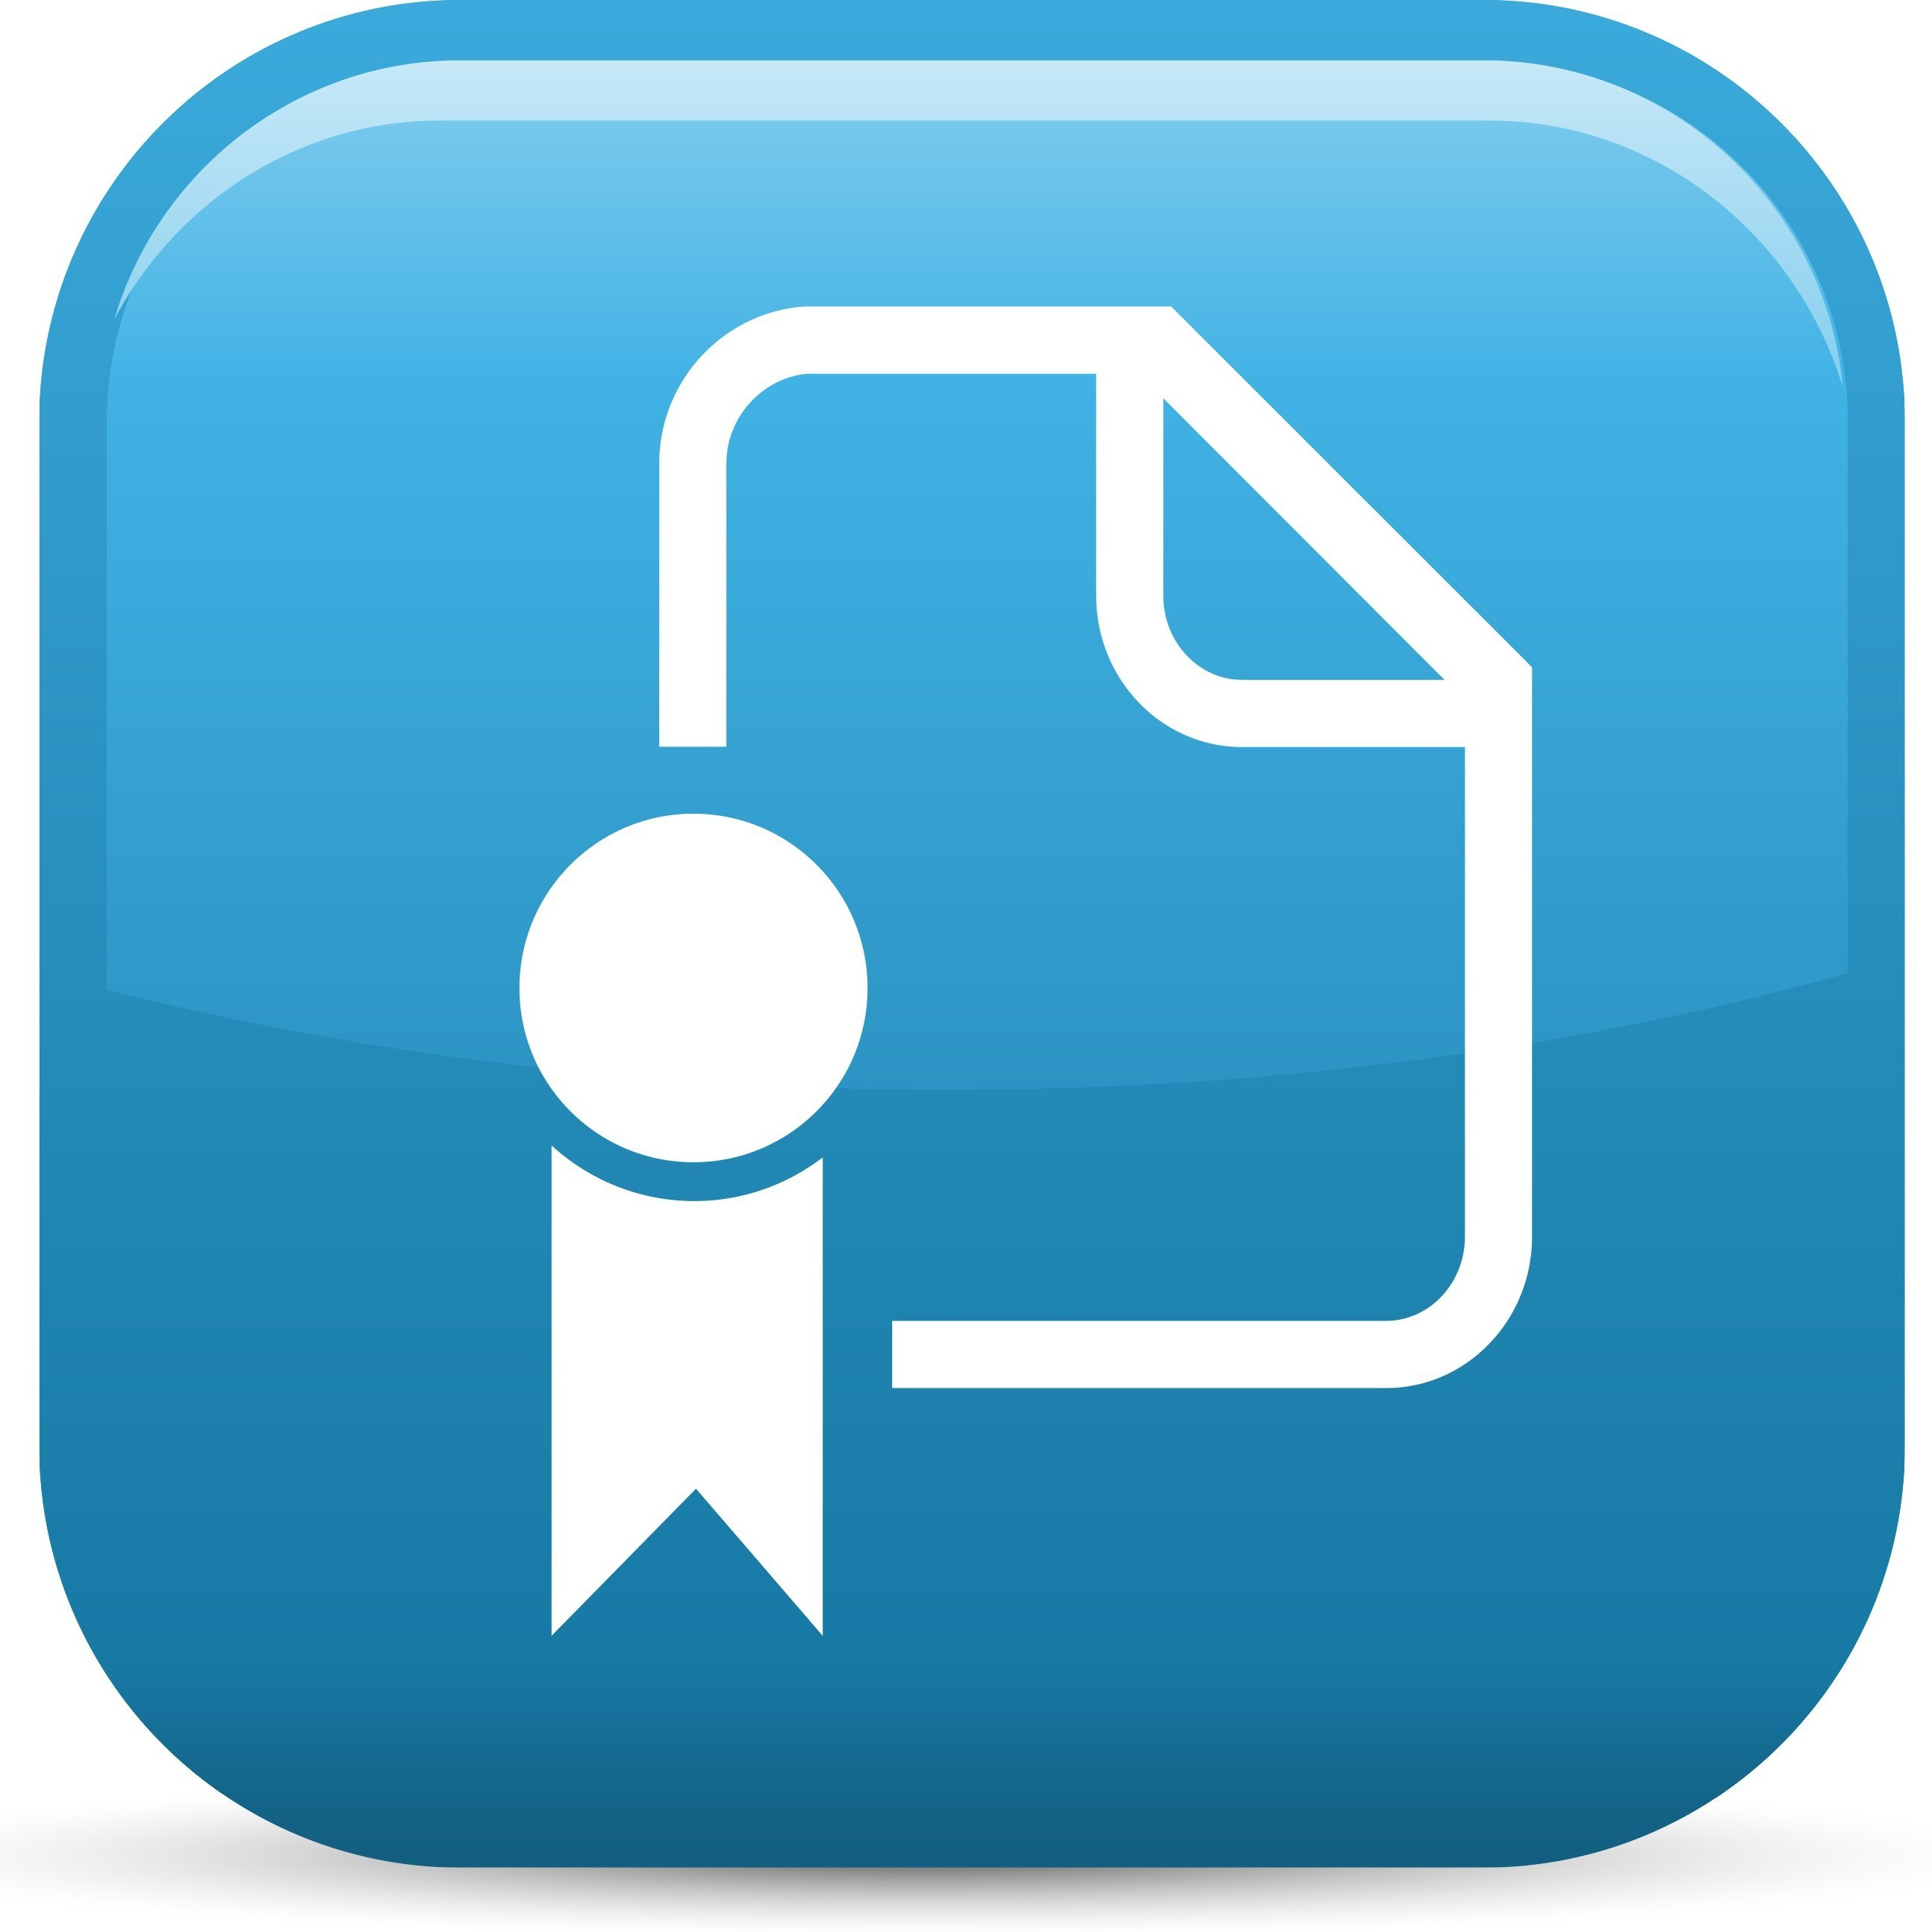 paper-award-elements-glossy-icon_MJeFpnLu_L